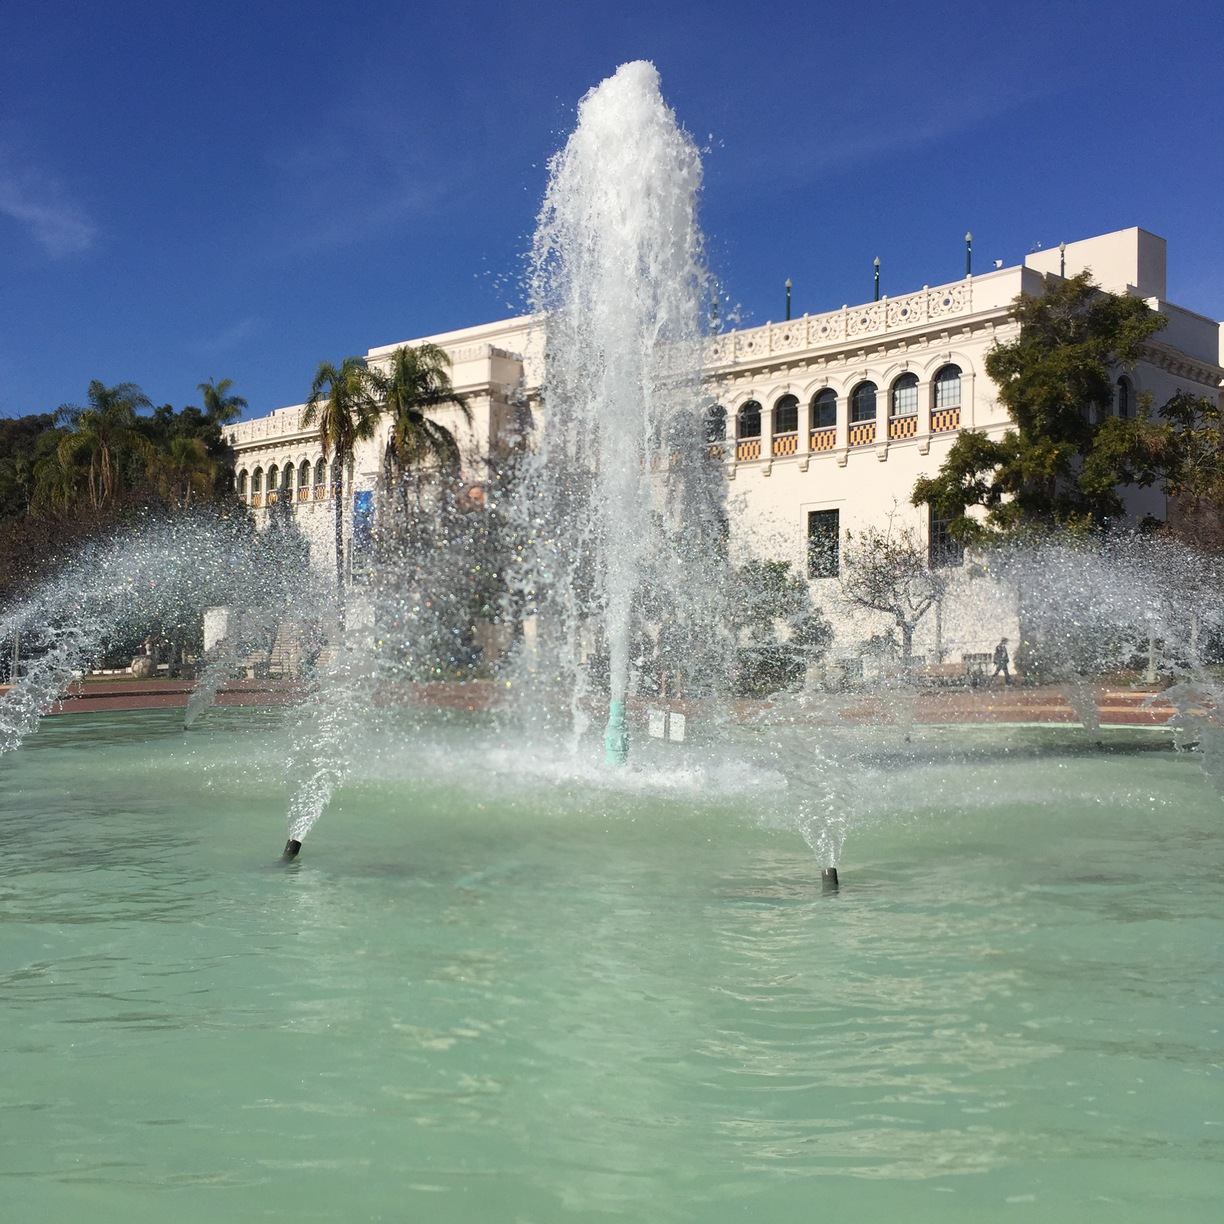 San Diego Automotive Museum San Diego, Bea Evenson Fountain, San Diego, California - 3 mile hike today...